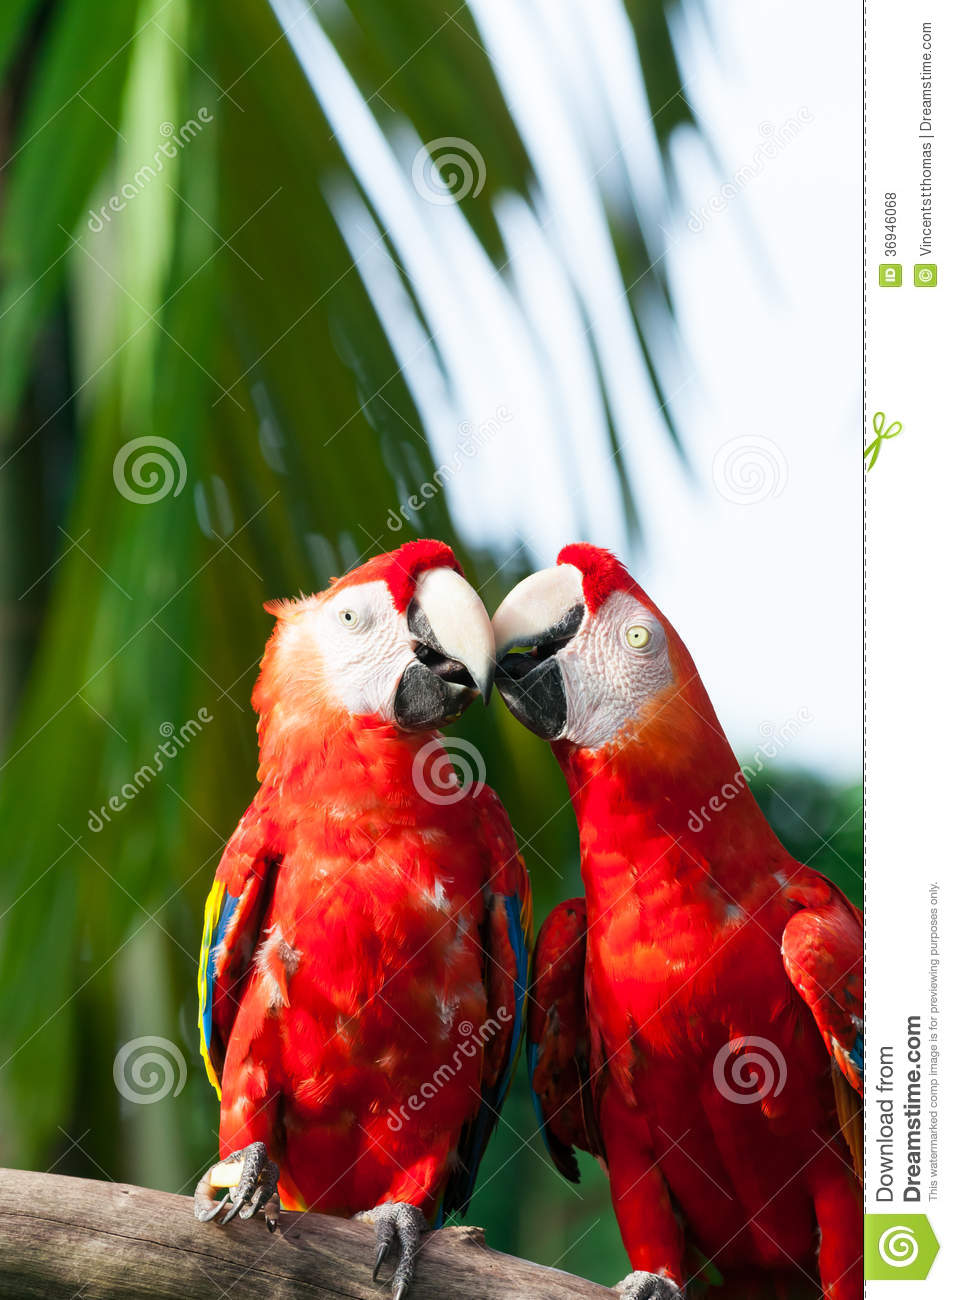 Scarlet Macaw Royalty Free Stock Photos - Image: 36946068